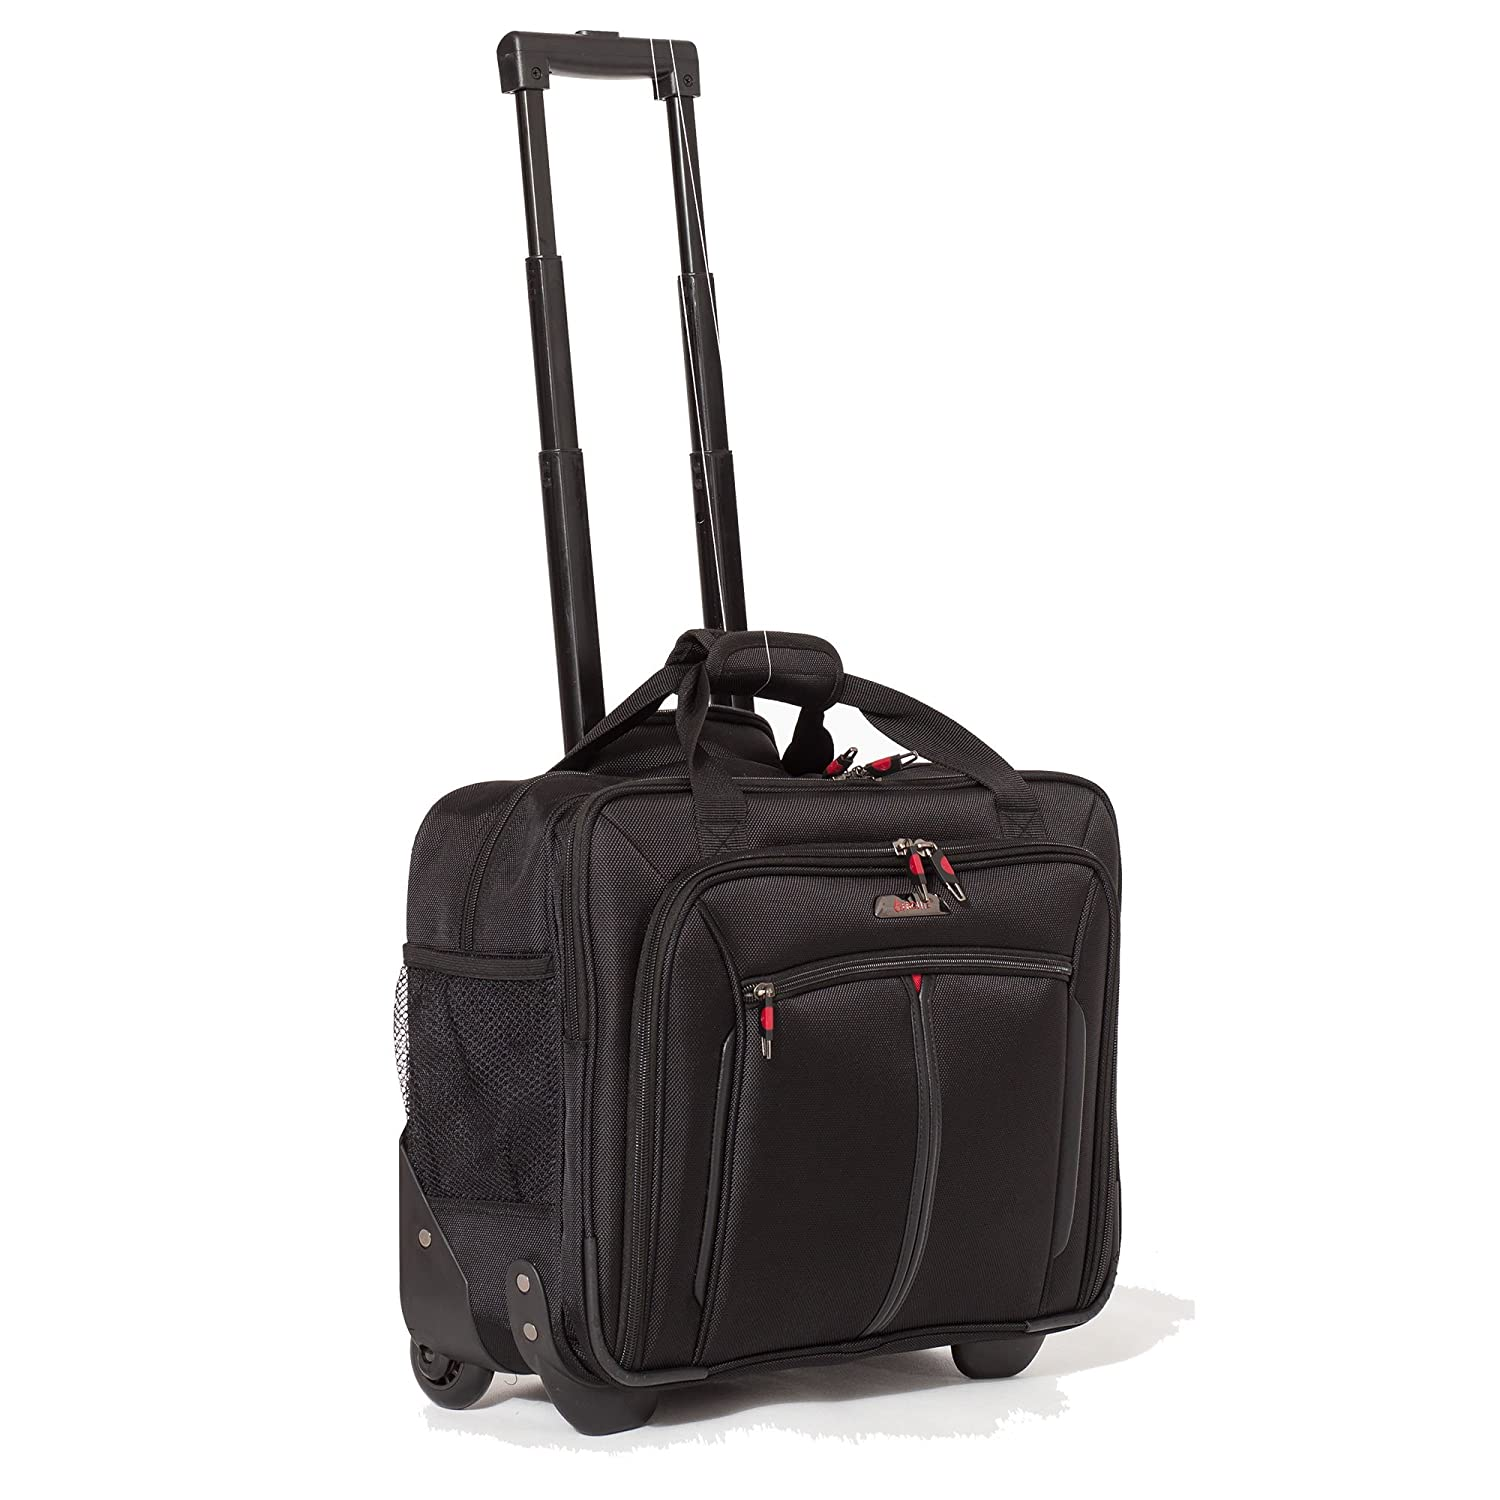 "Aerolite 17"" Executive Cabin Luggage Business Bag Laptop Bag with Wheels – Approved for Ryanair, Easyjet, BA & Jet2, Black"